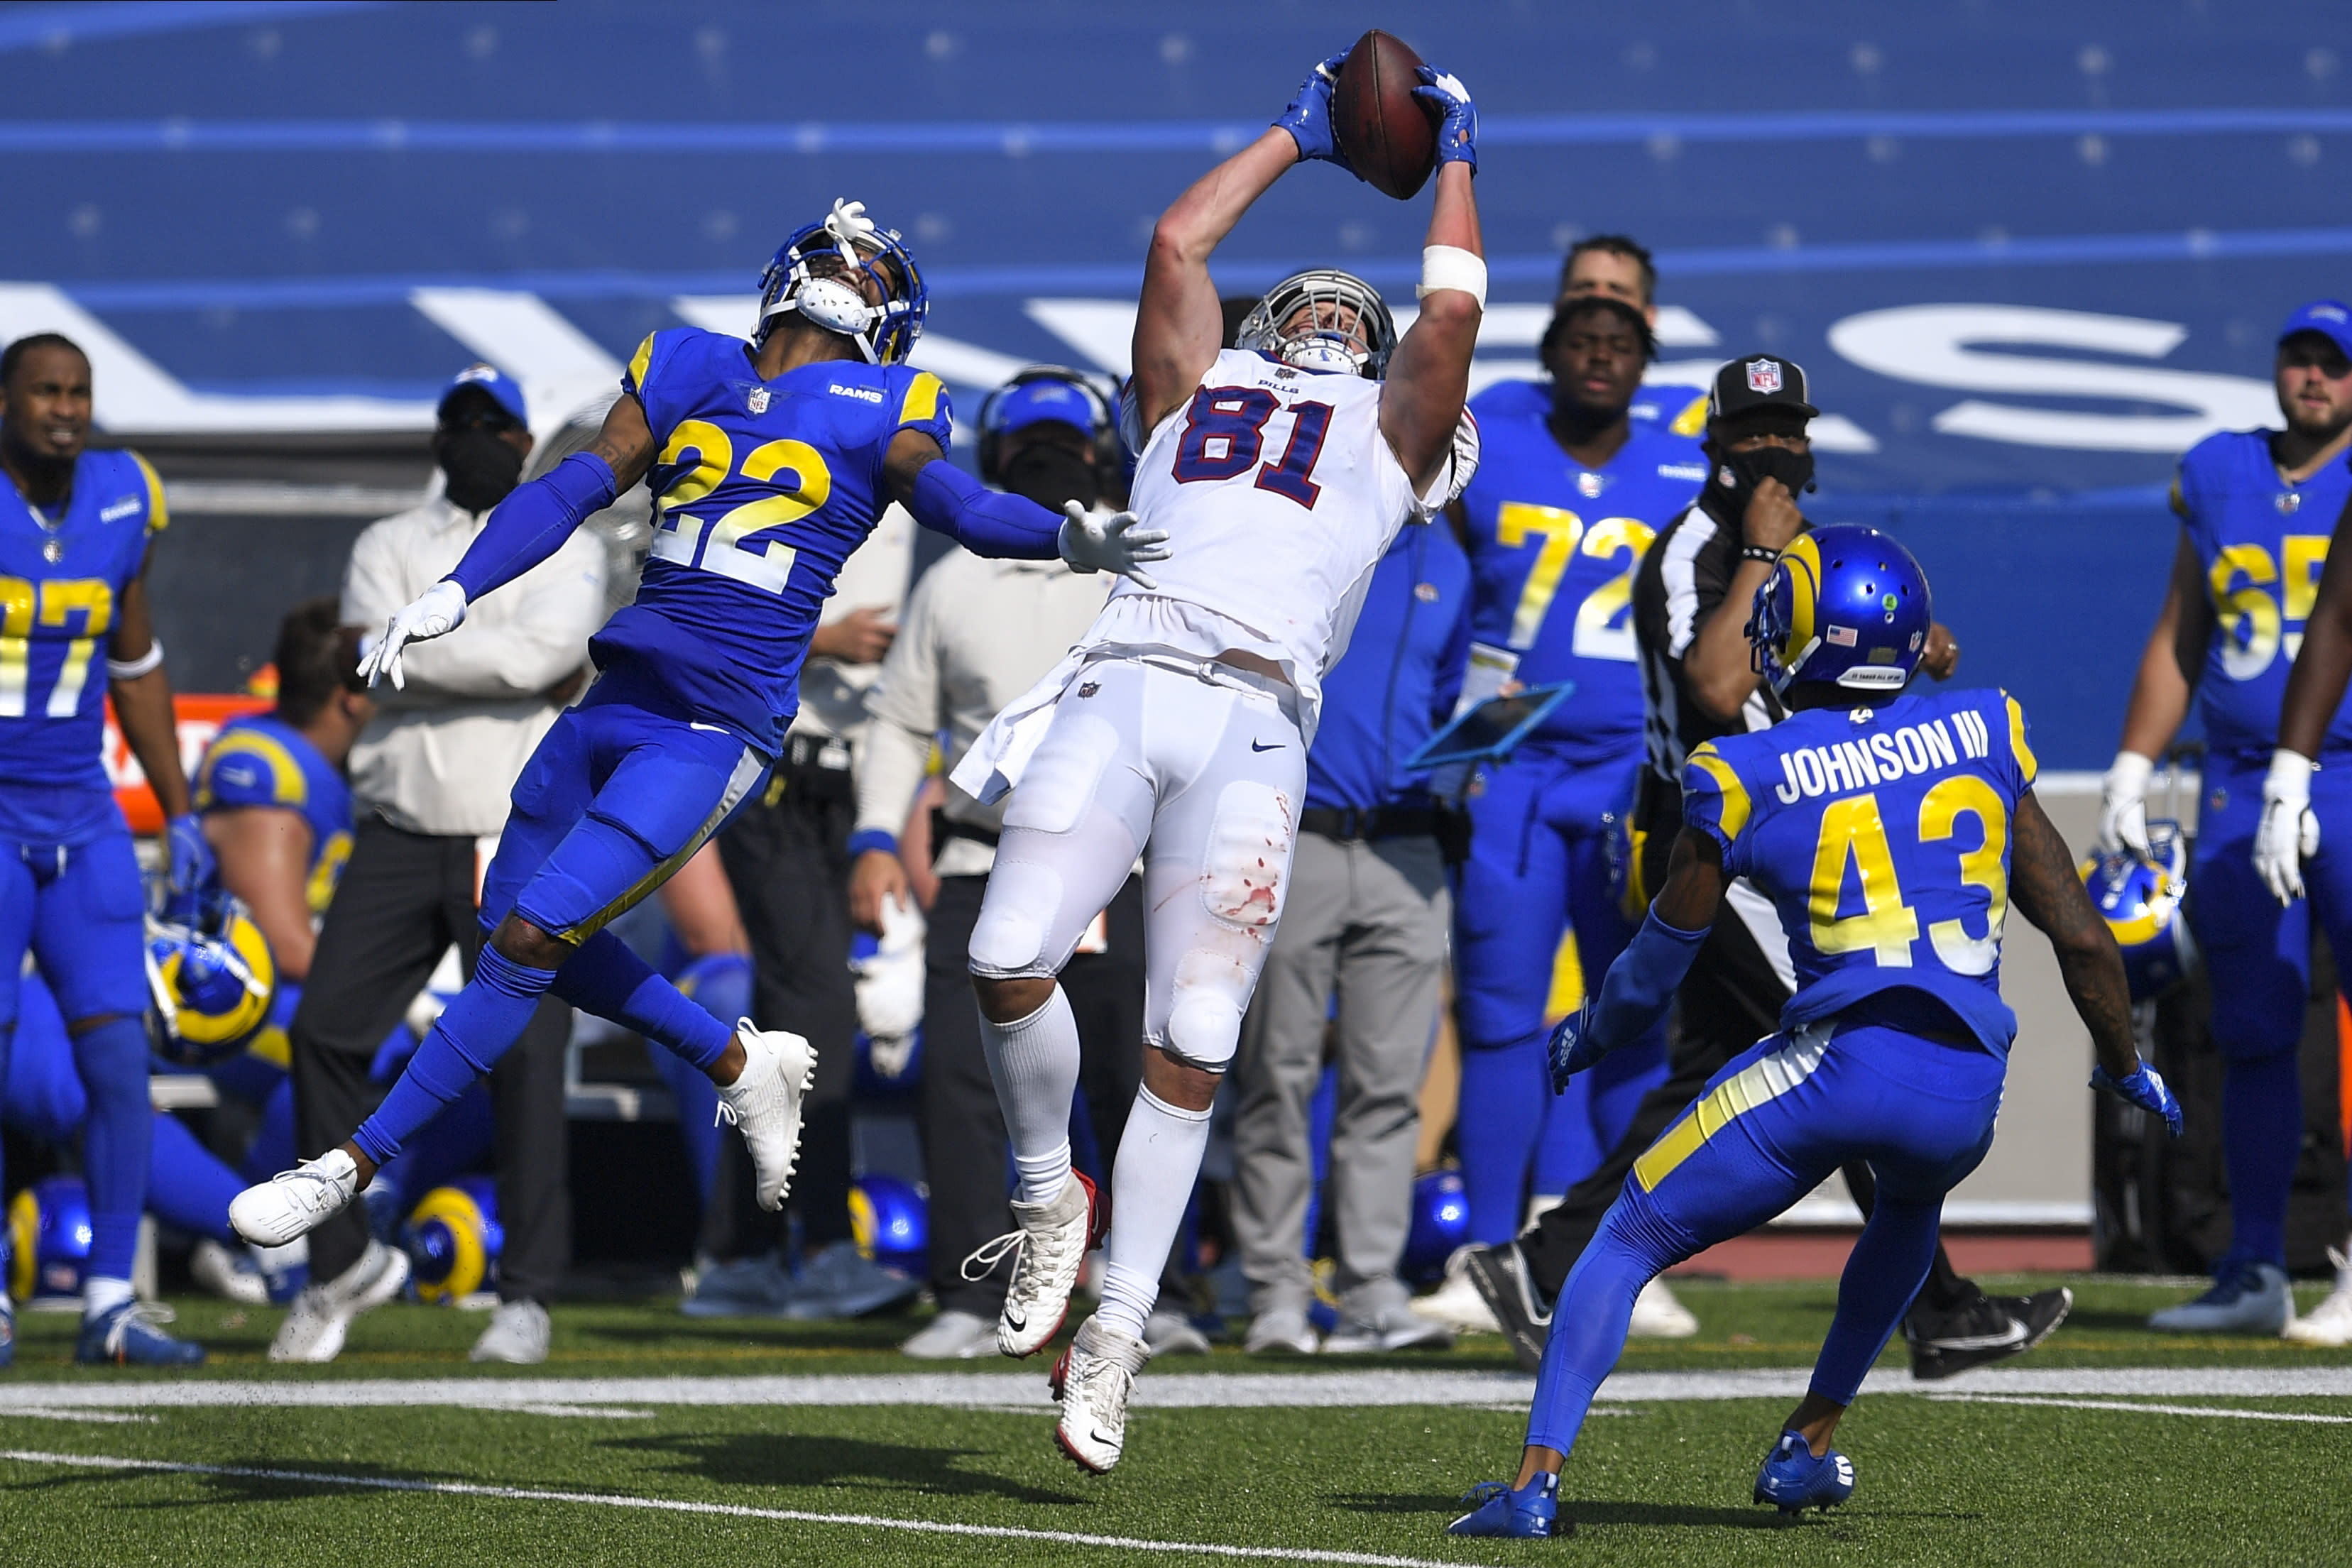 Buffalo Bills tight end Tyler Kroft (81) catches a pass in front of Los Angeles Rams' Troy Hill (22) and John Johnson (43) during the second half of an NFL football game Sunday, Aug. 26, 2018, in Orchard Park, N.Y. (AP Photo/Adrian Kraus)